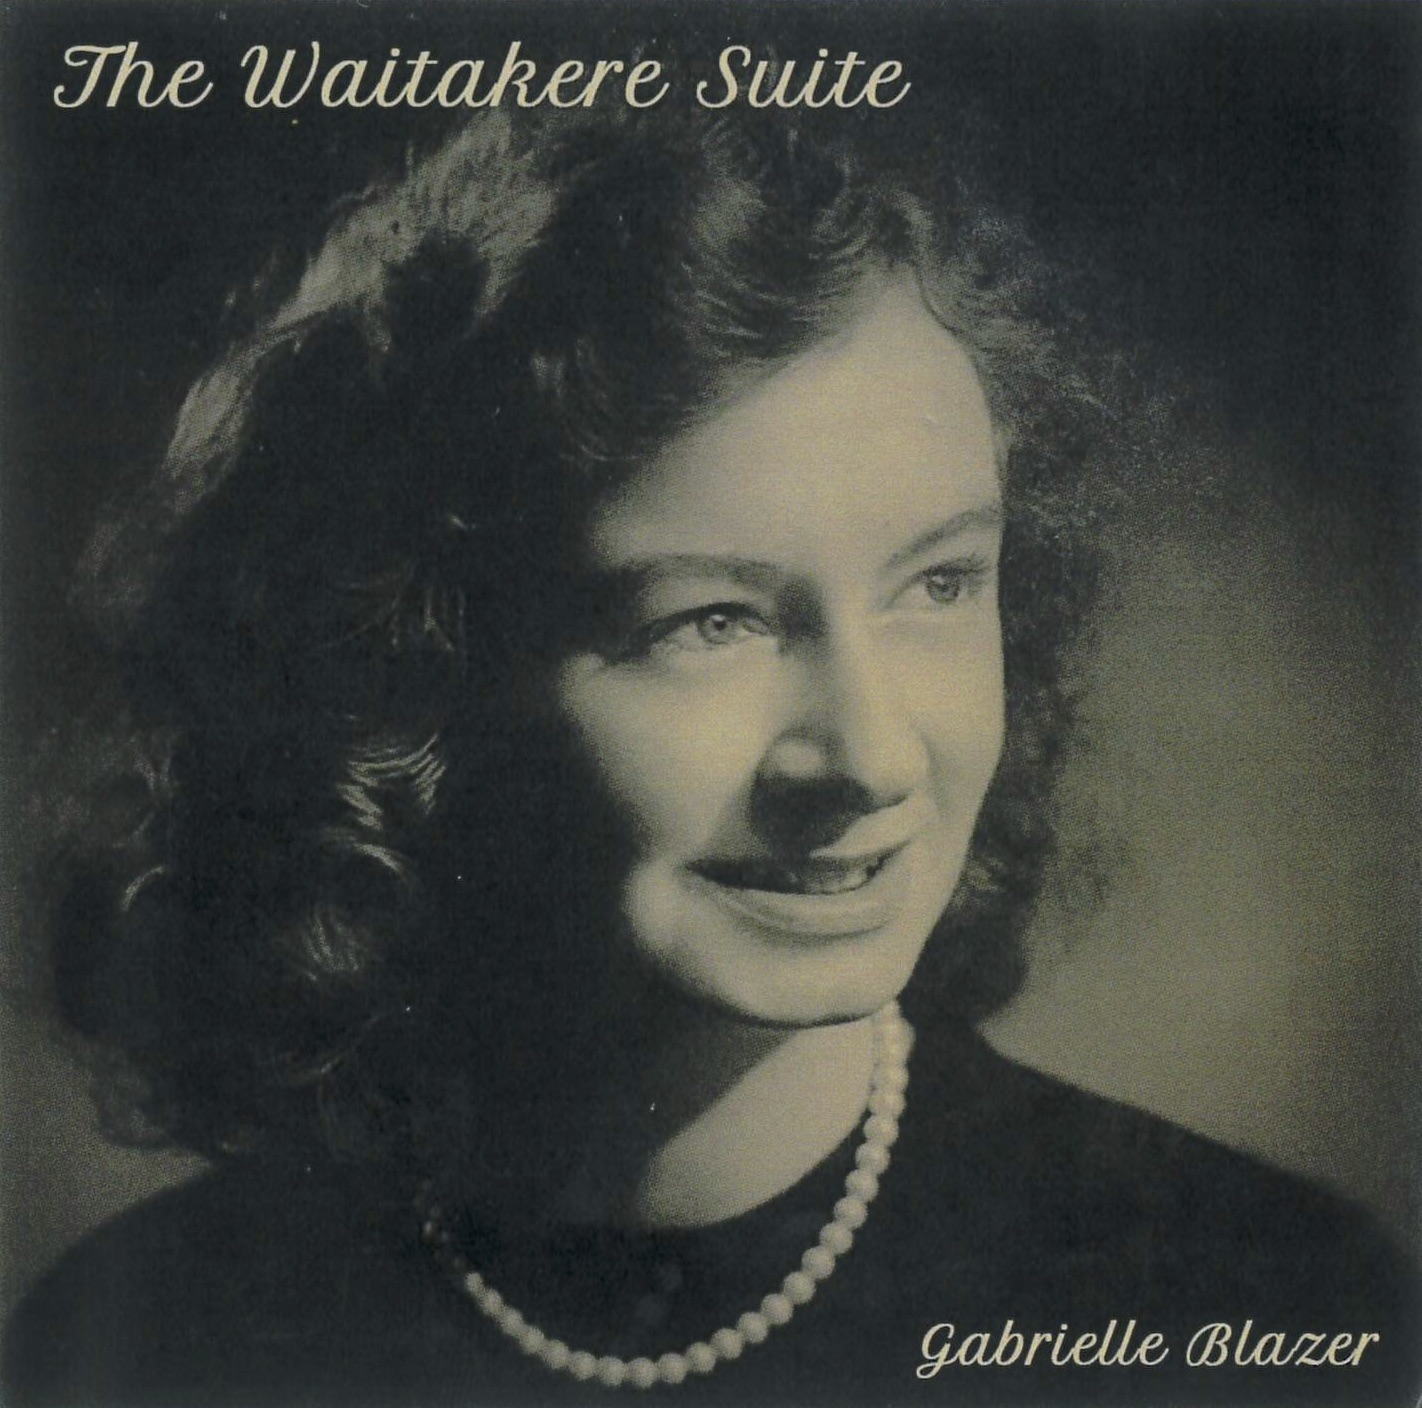 Gabrielle Blazer | The Waitakere Suite - downloadable MP3 ALBUM